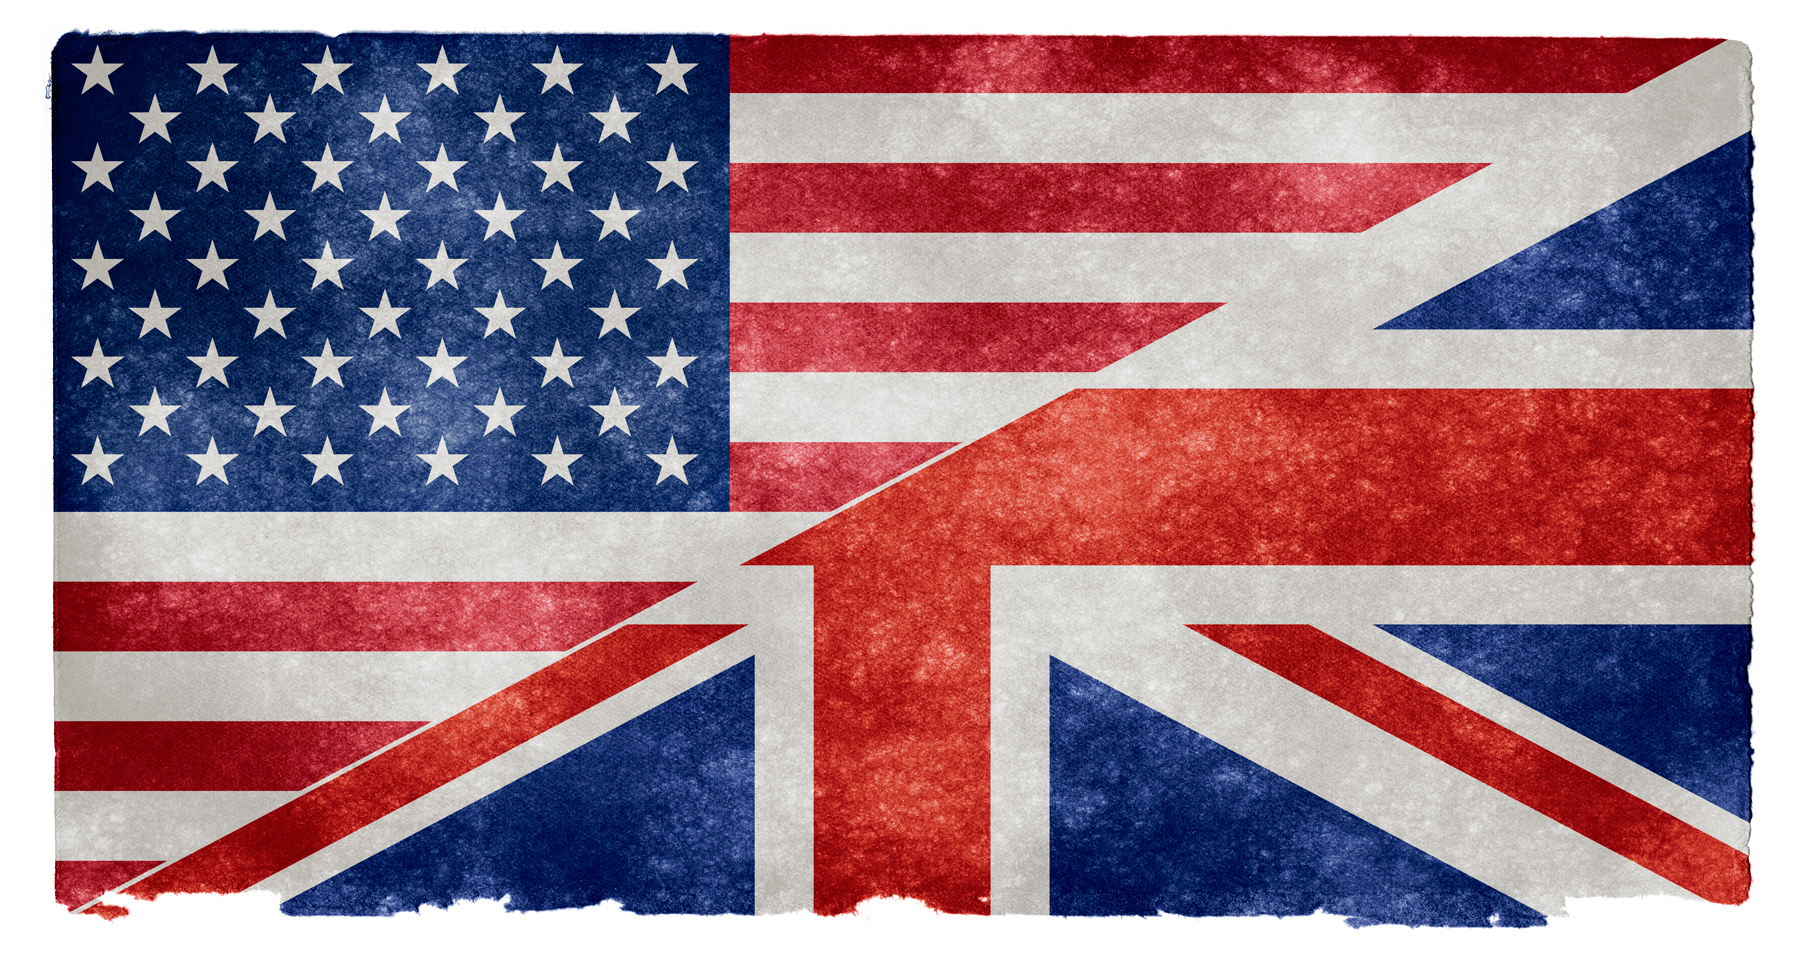 how america and great britain benefited from the american revolution The chapter on the impact on great britain in the impact of the american revolution abroad concludes with: the expansionist forces released by the revolution worked, surprisingly, for the benefit of britain.